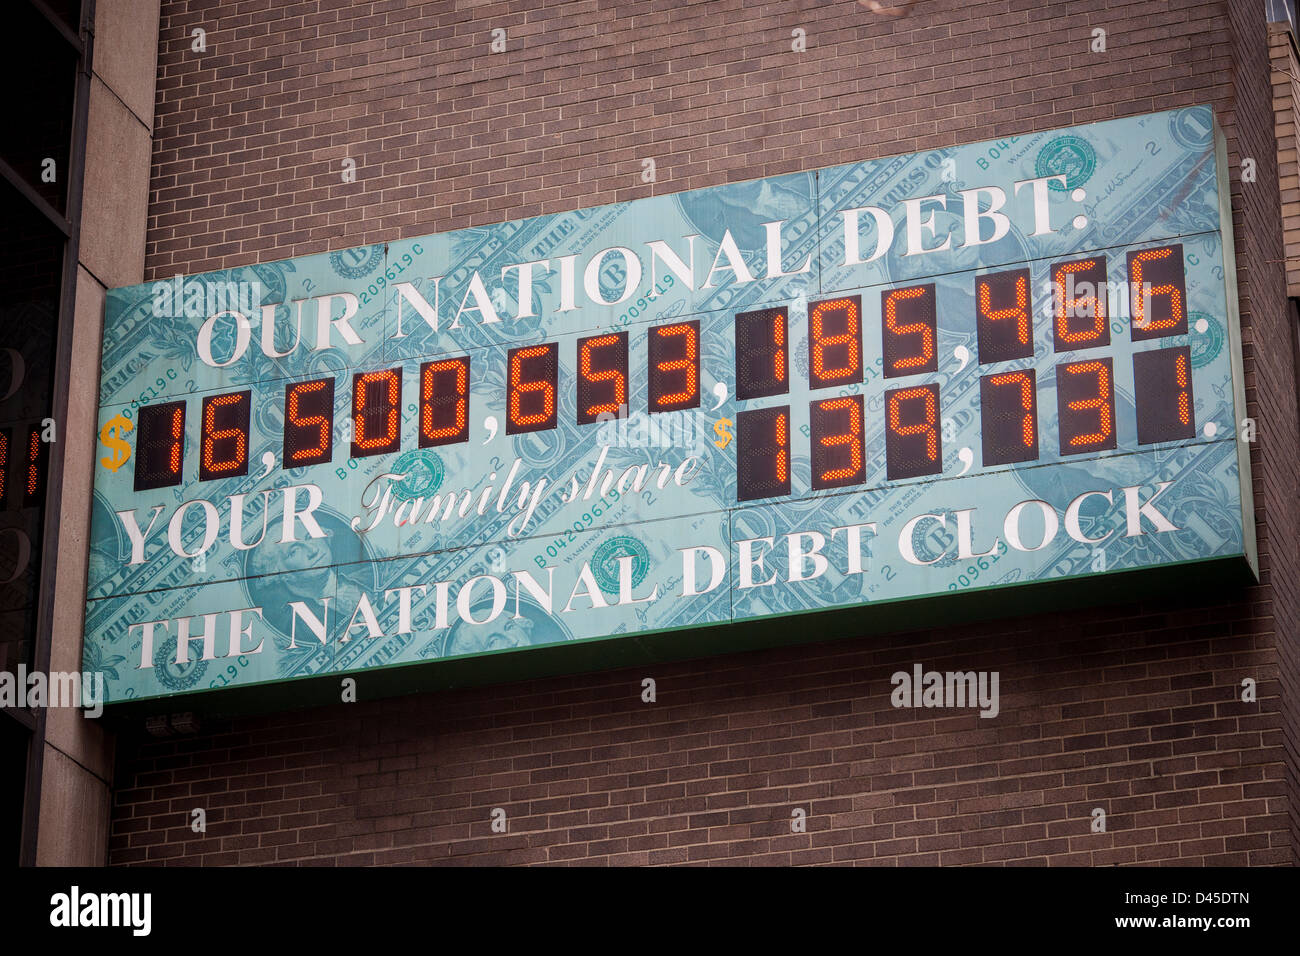 The National Debt Clock in New York showing the US debt as over $16 trillion - Stock Image